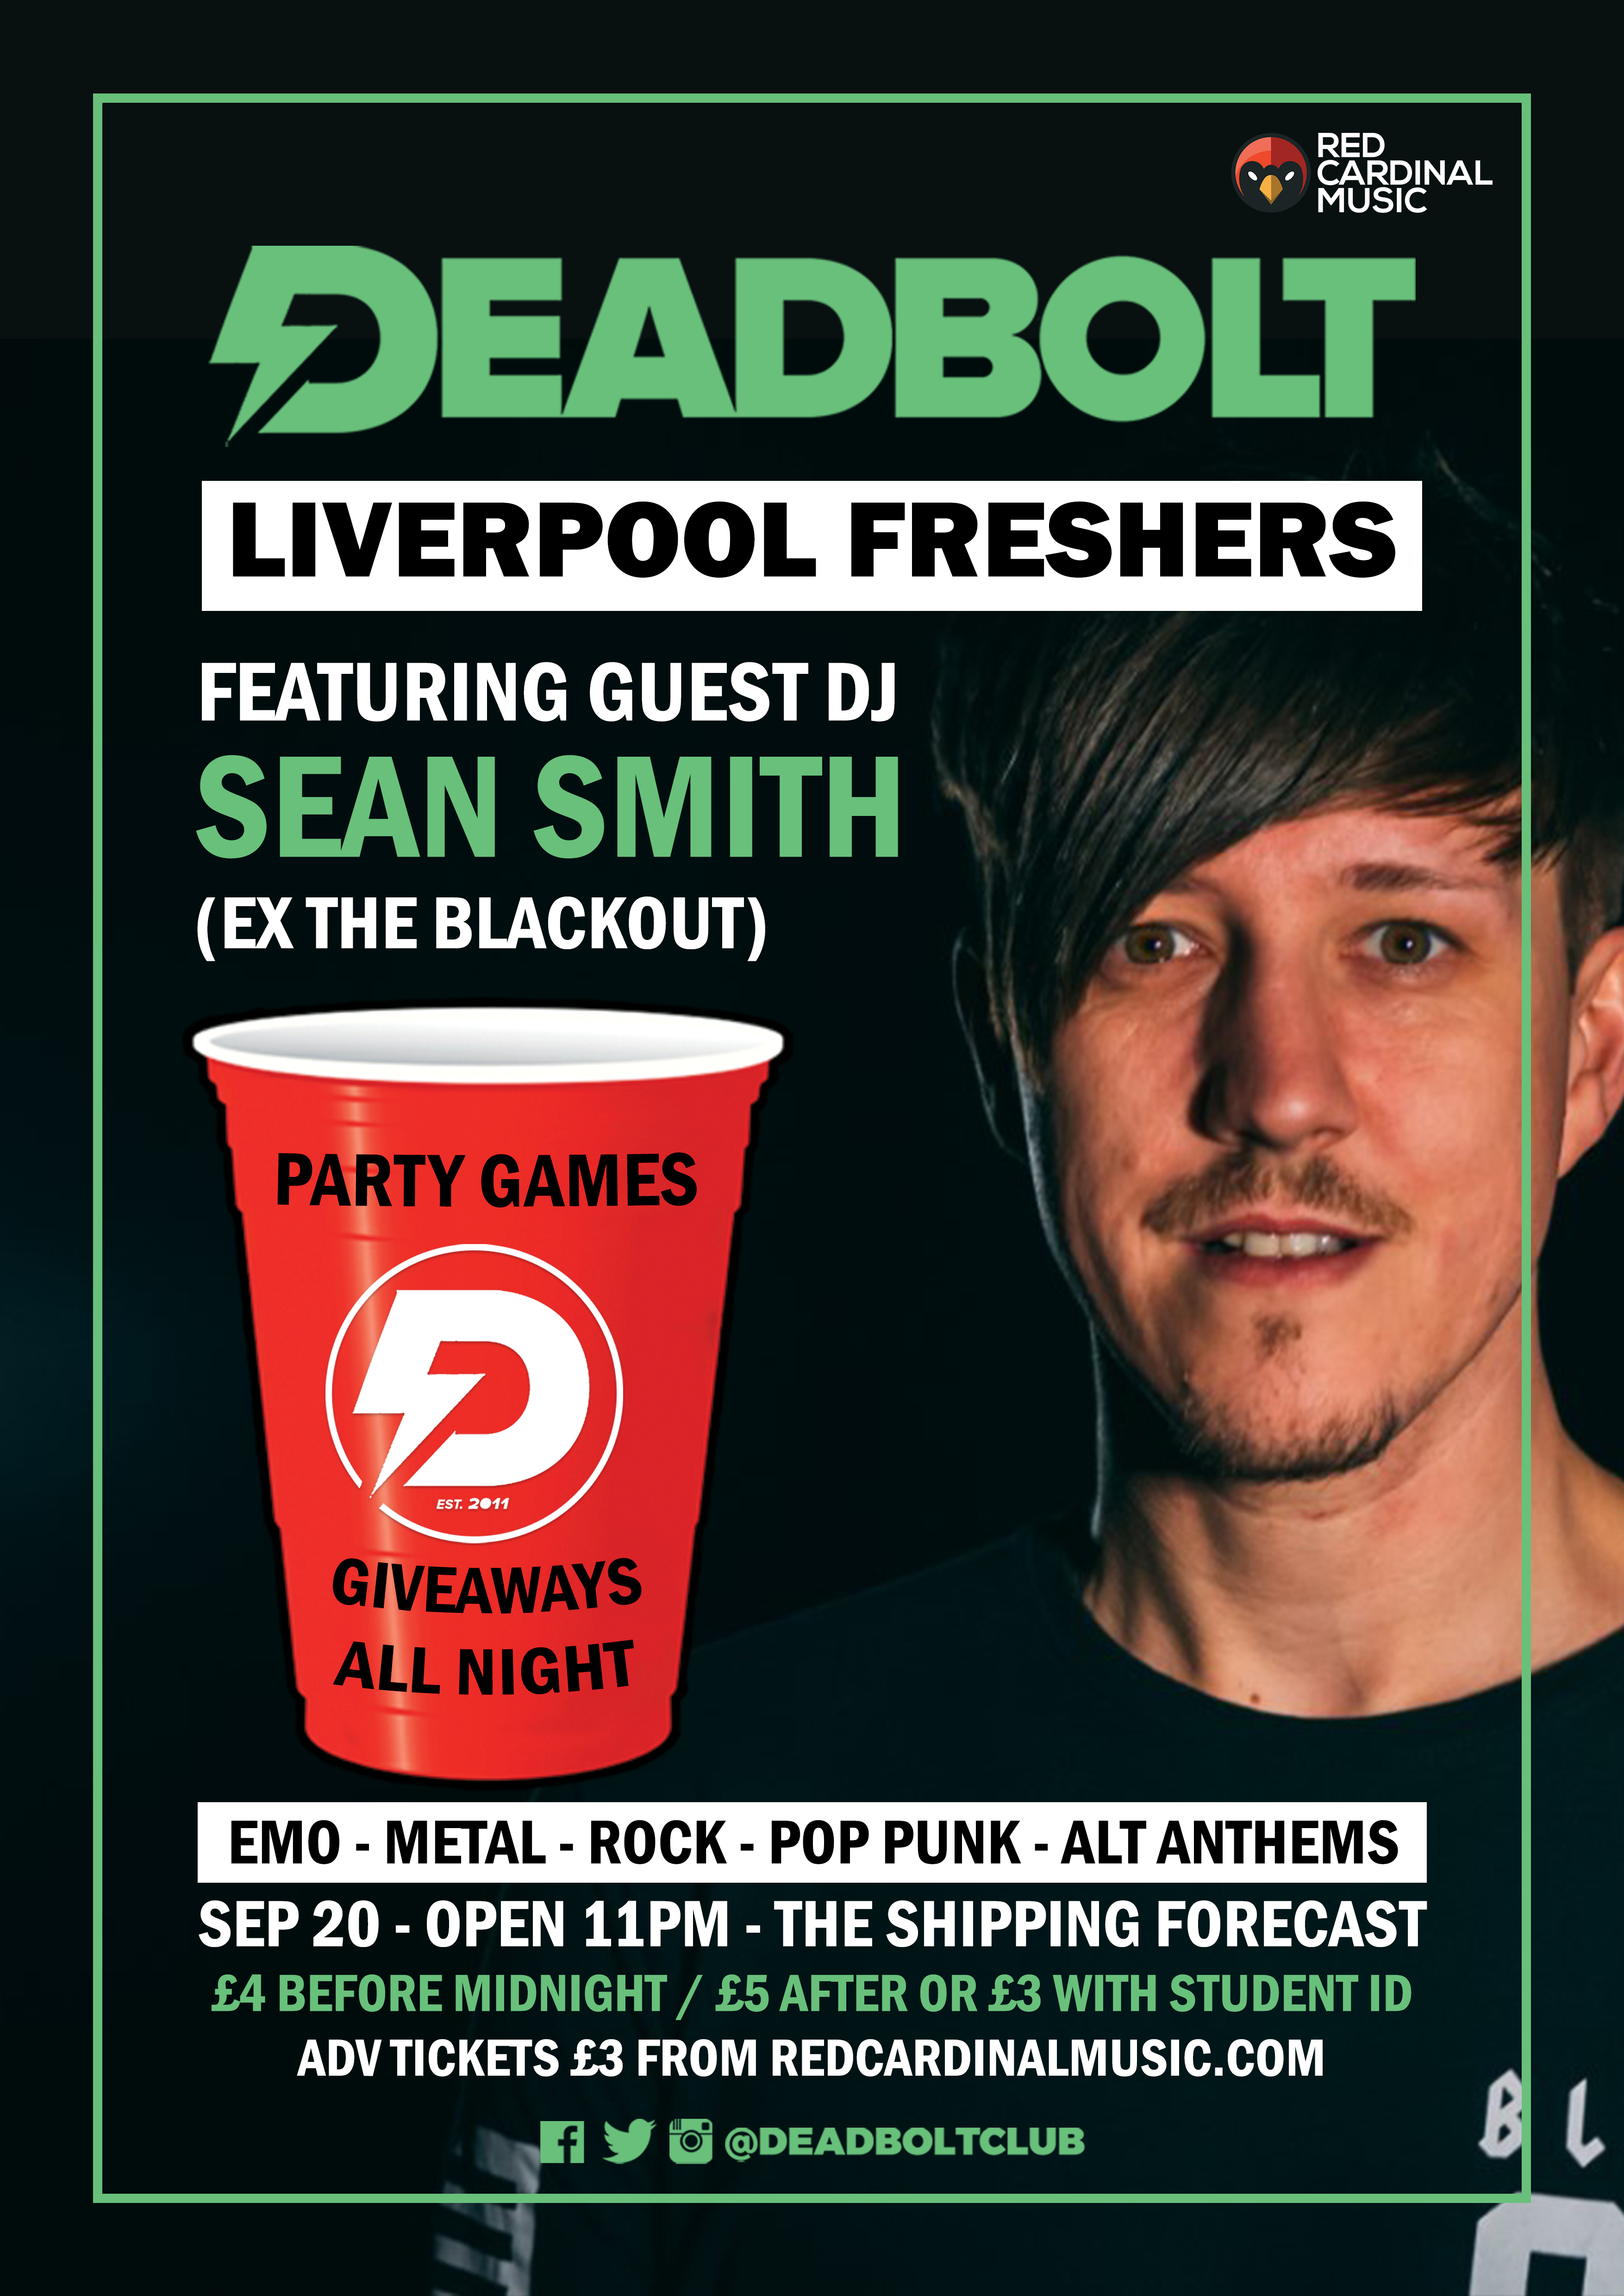 Deadbolt Liverpool Freshers Party 2019 with Sean Smith - Poster - Red Cardinal Music